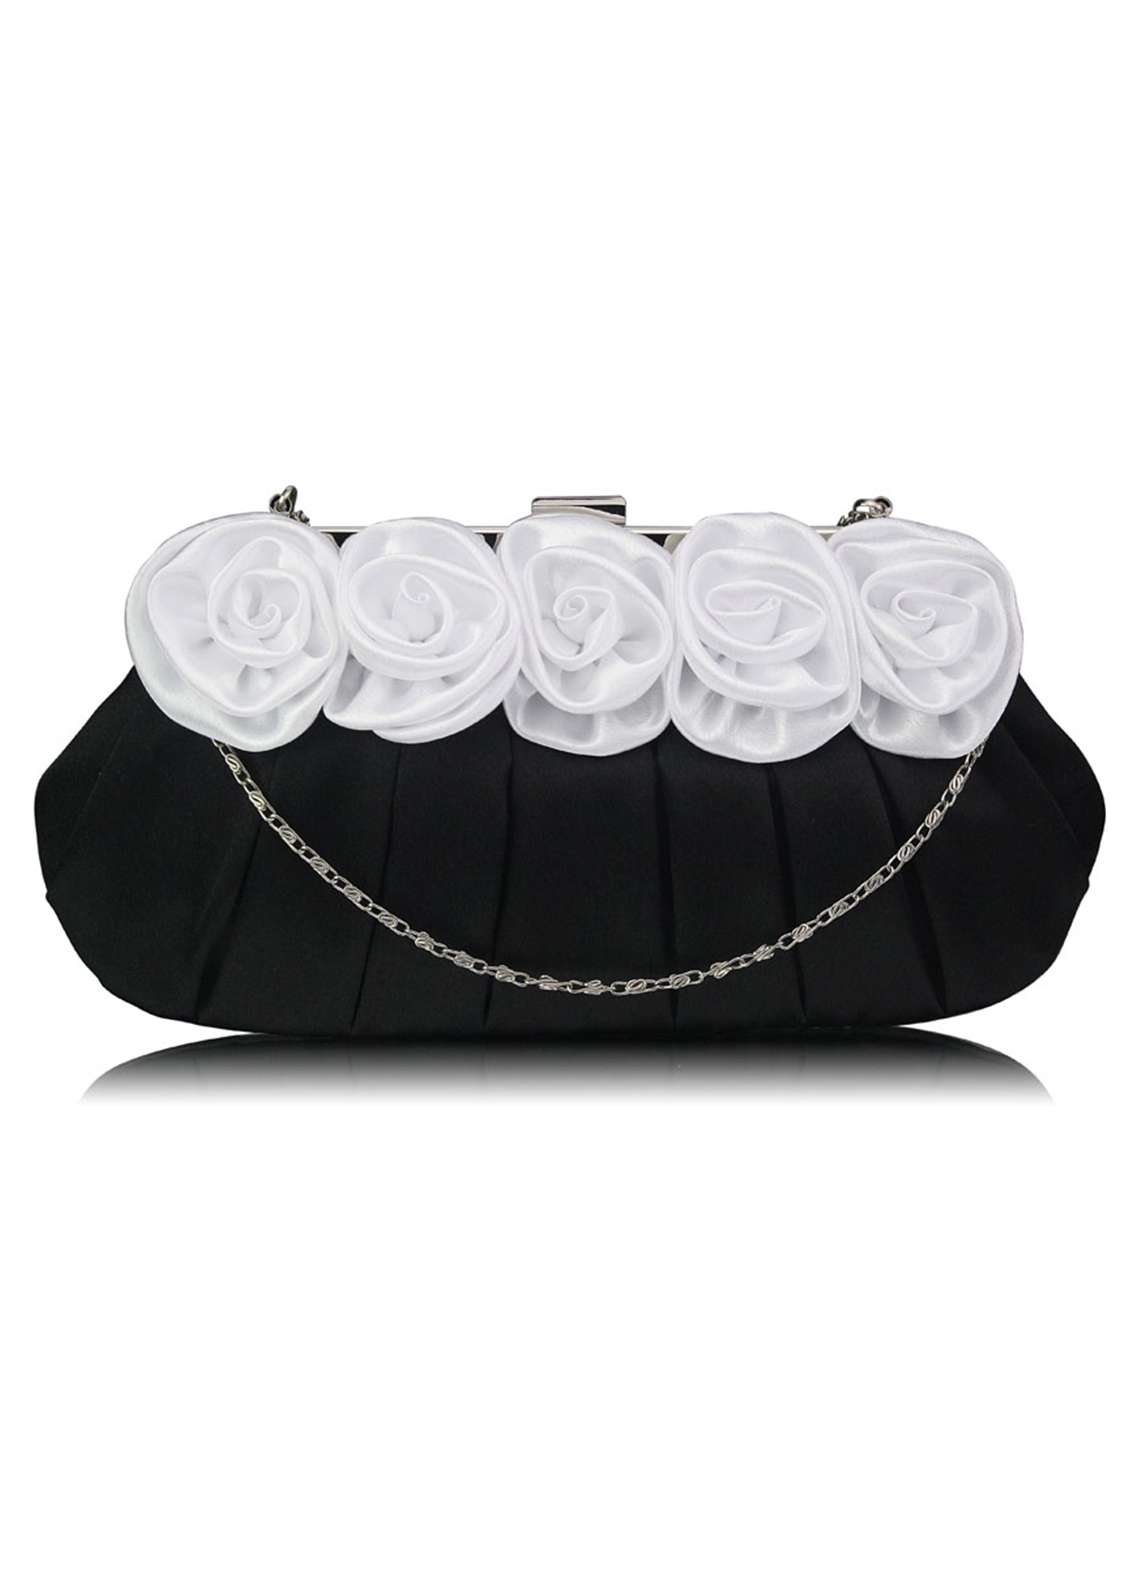 Leesun London   Clutch Bags  for Women  White with Flower Design